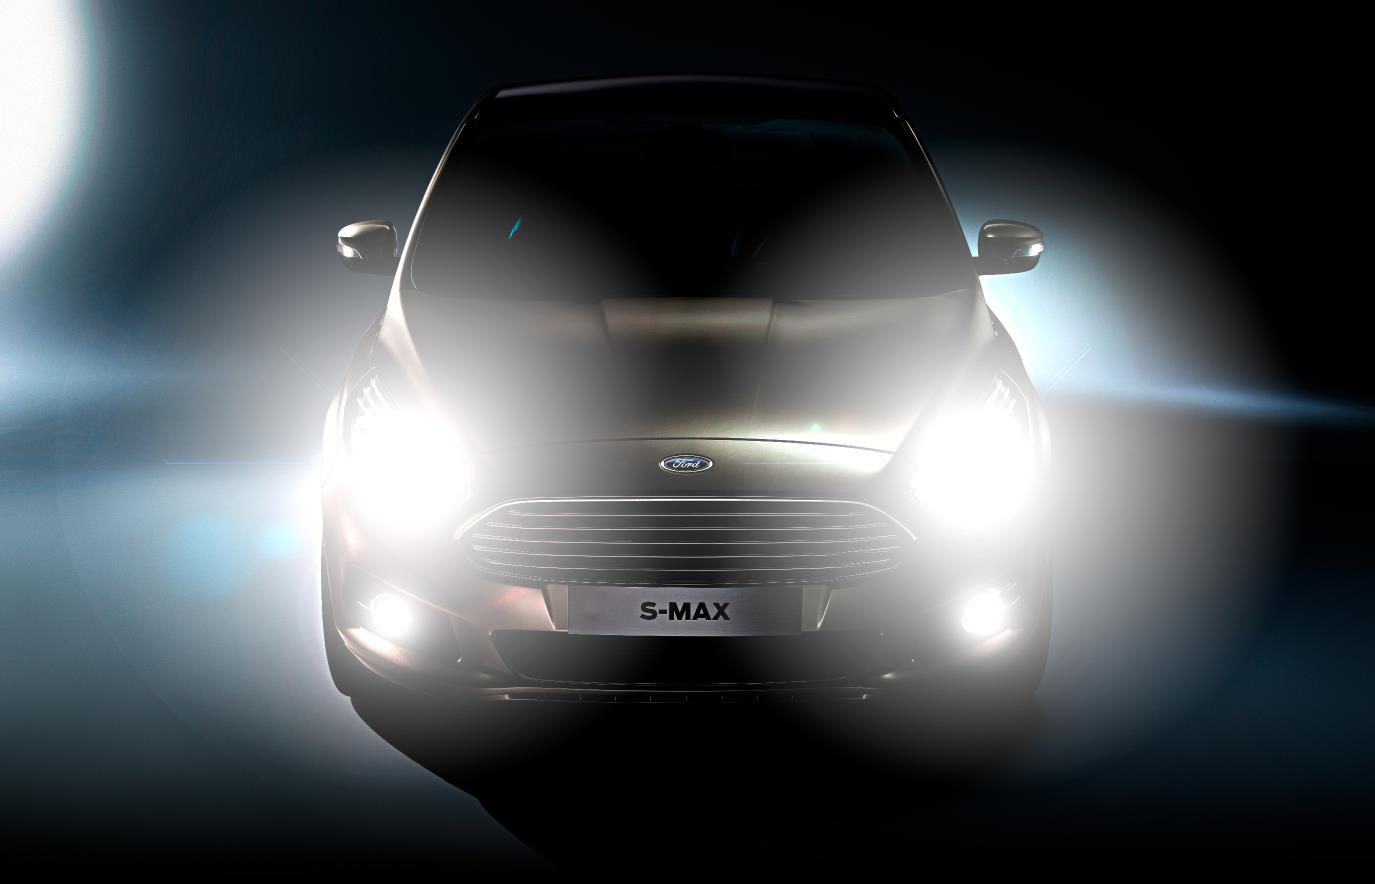 Ford S-MAX Glare-Free High-Beam Headlights